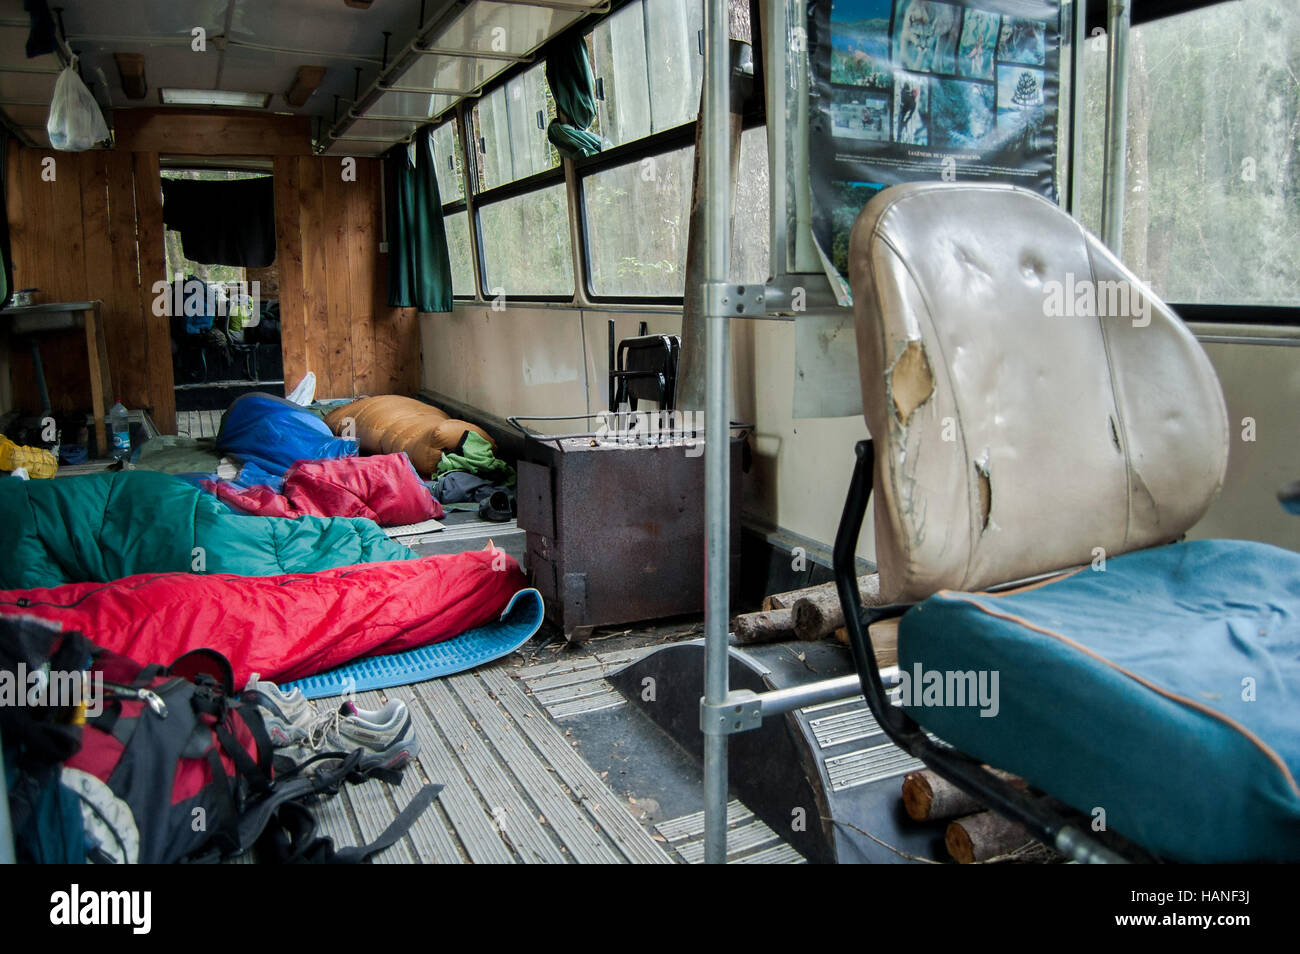 A group of travelers sleep inside an old bus transformed into a hostel - Stock Image